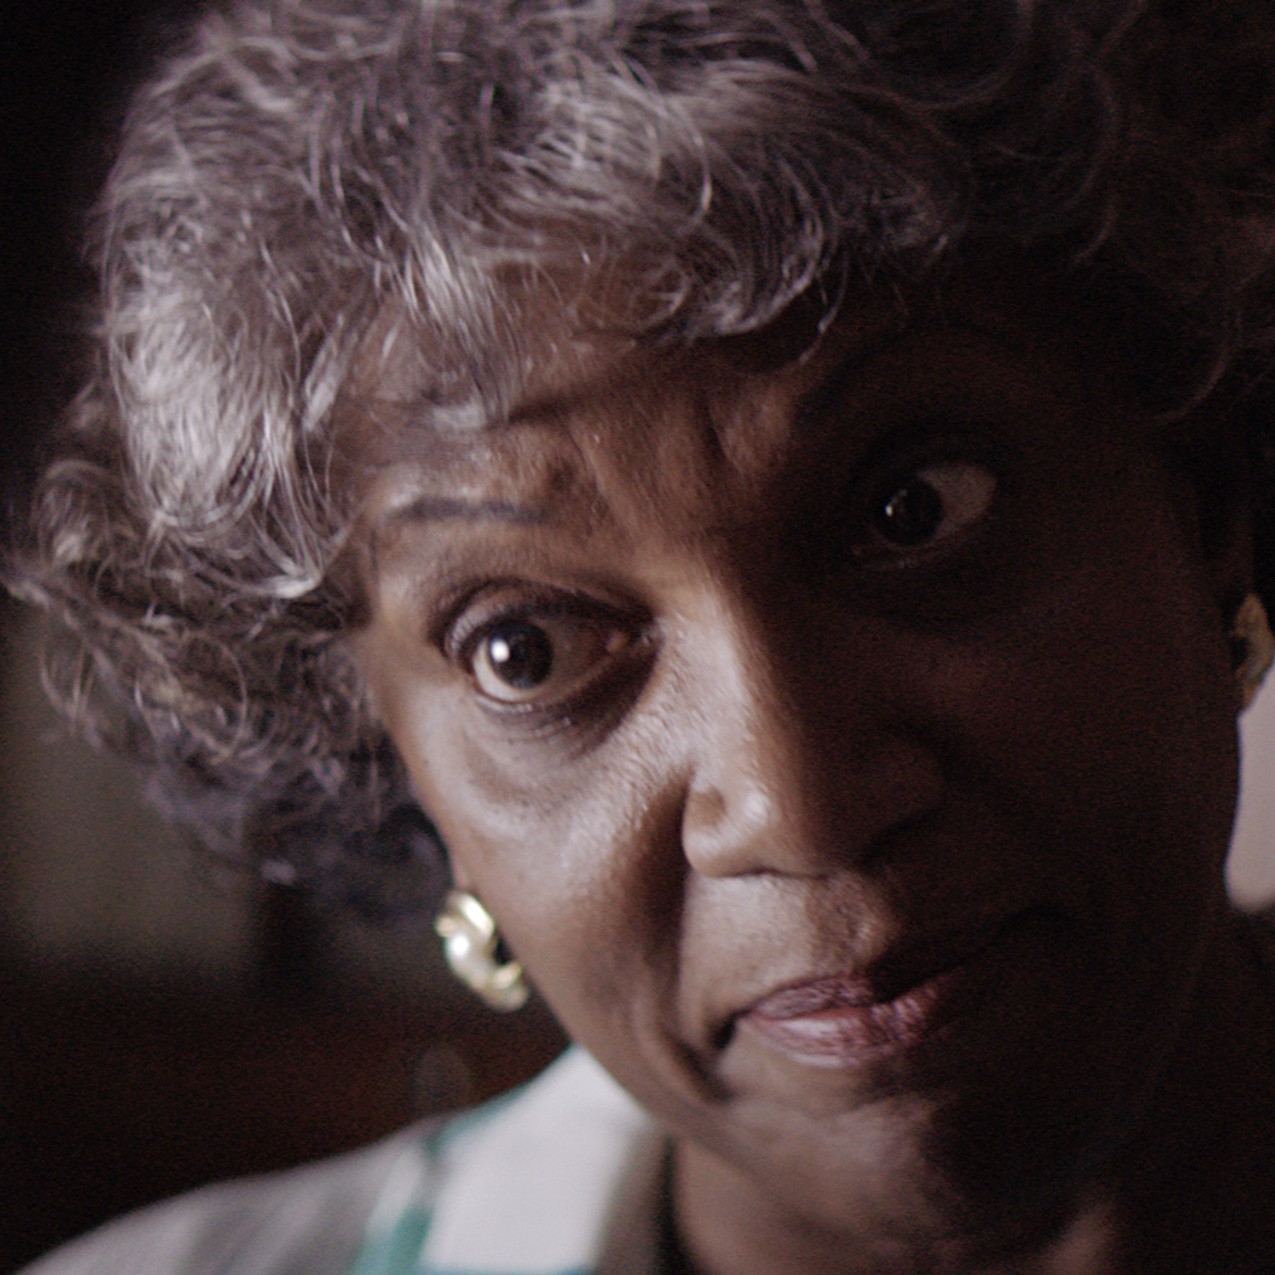 ANNA MARIA HORSFORD as Mrs. WalkerMrs. Walker is vibrant and full of life but she's also a recent widow and extremely lonely. She gladly welcomes the company of two strangers even though their intentions aren't pure. -